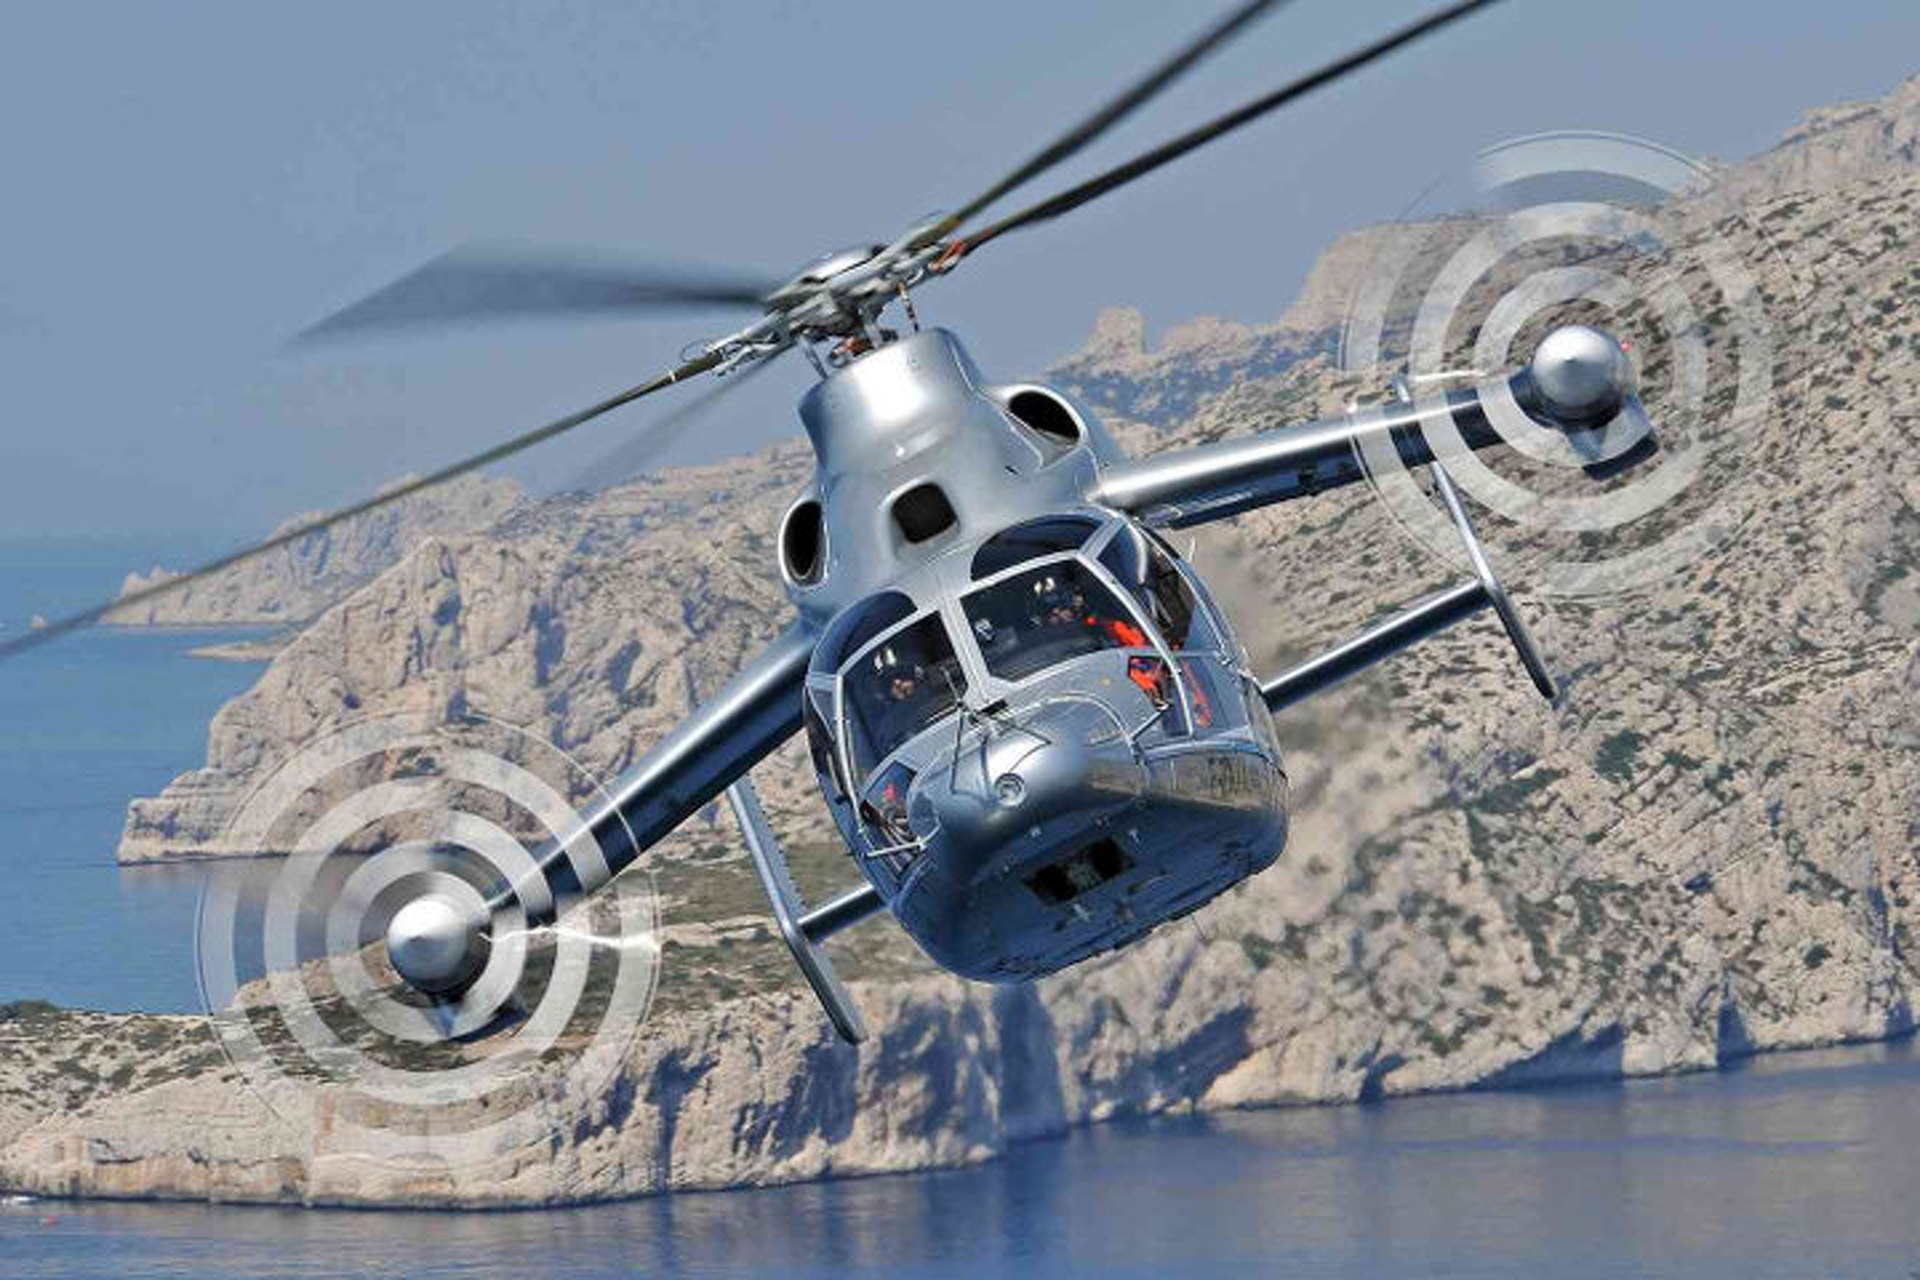 Airbus X3 Poised to Change the Helicopter Industry [Video]